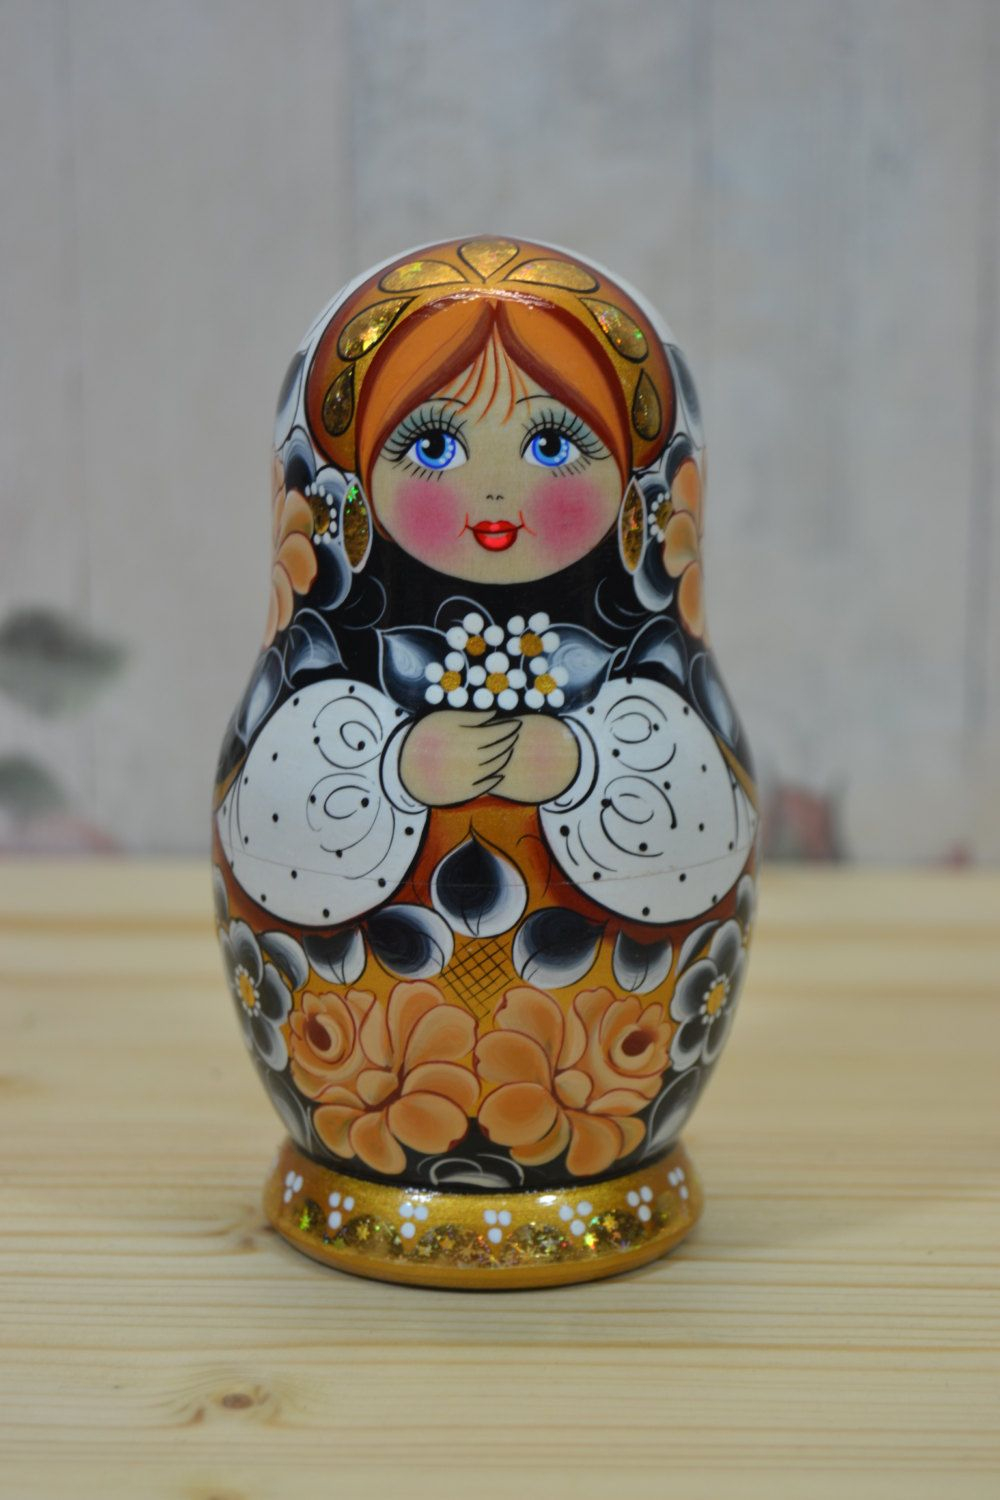 Poupée De Matryoshka Lot De 5. Fireplacehomeshelf Décor à Nom Poupée Russe